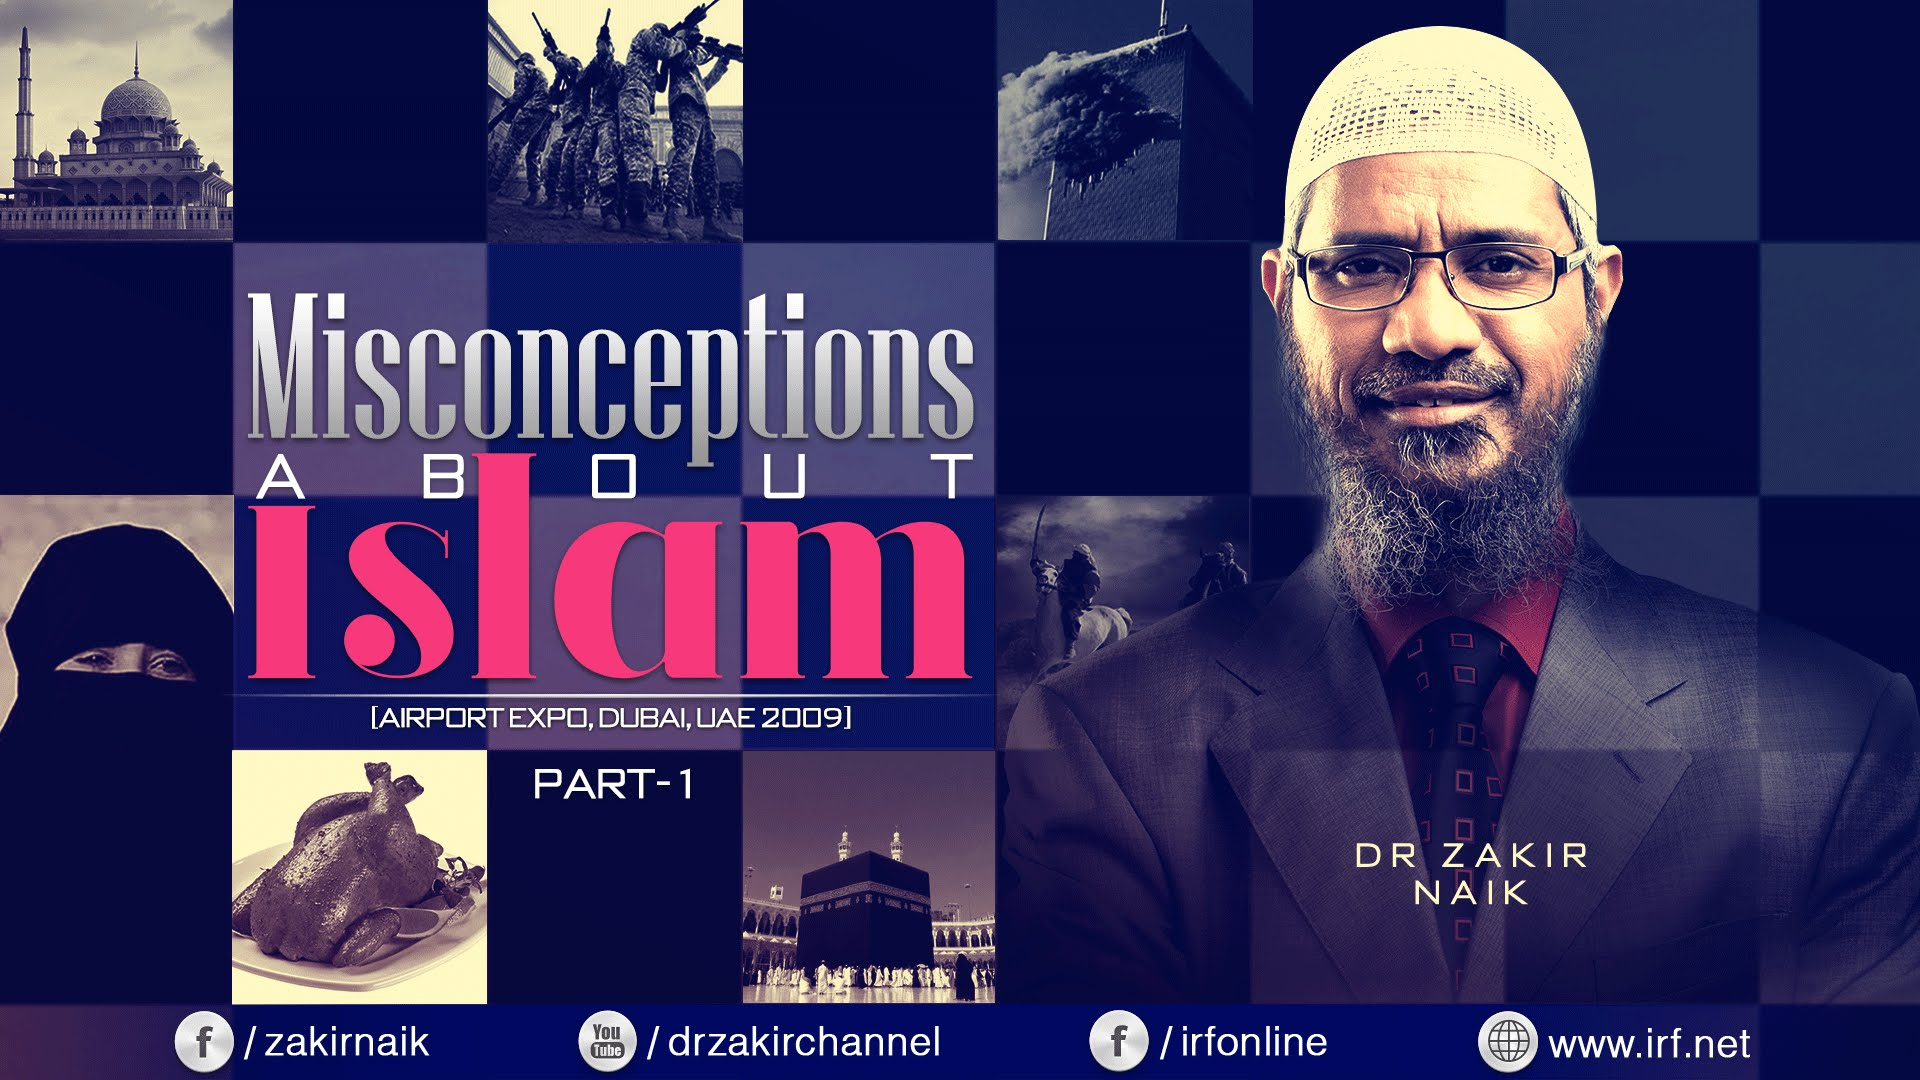 Misconceptions About Islam Part 1